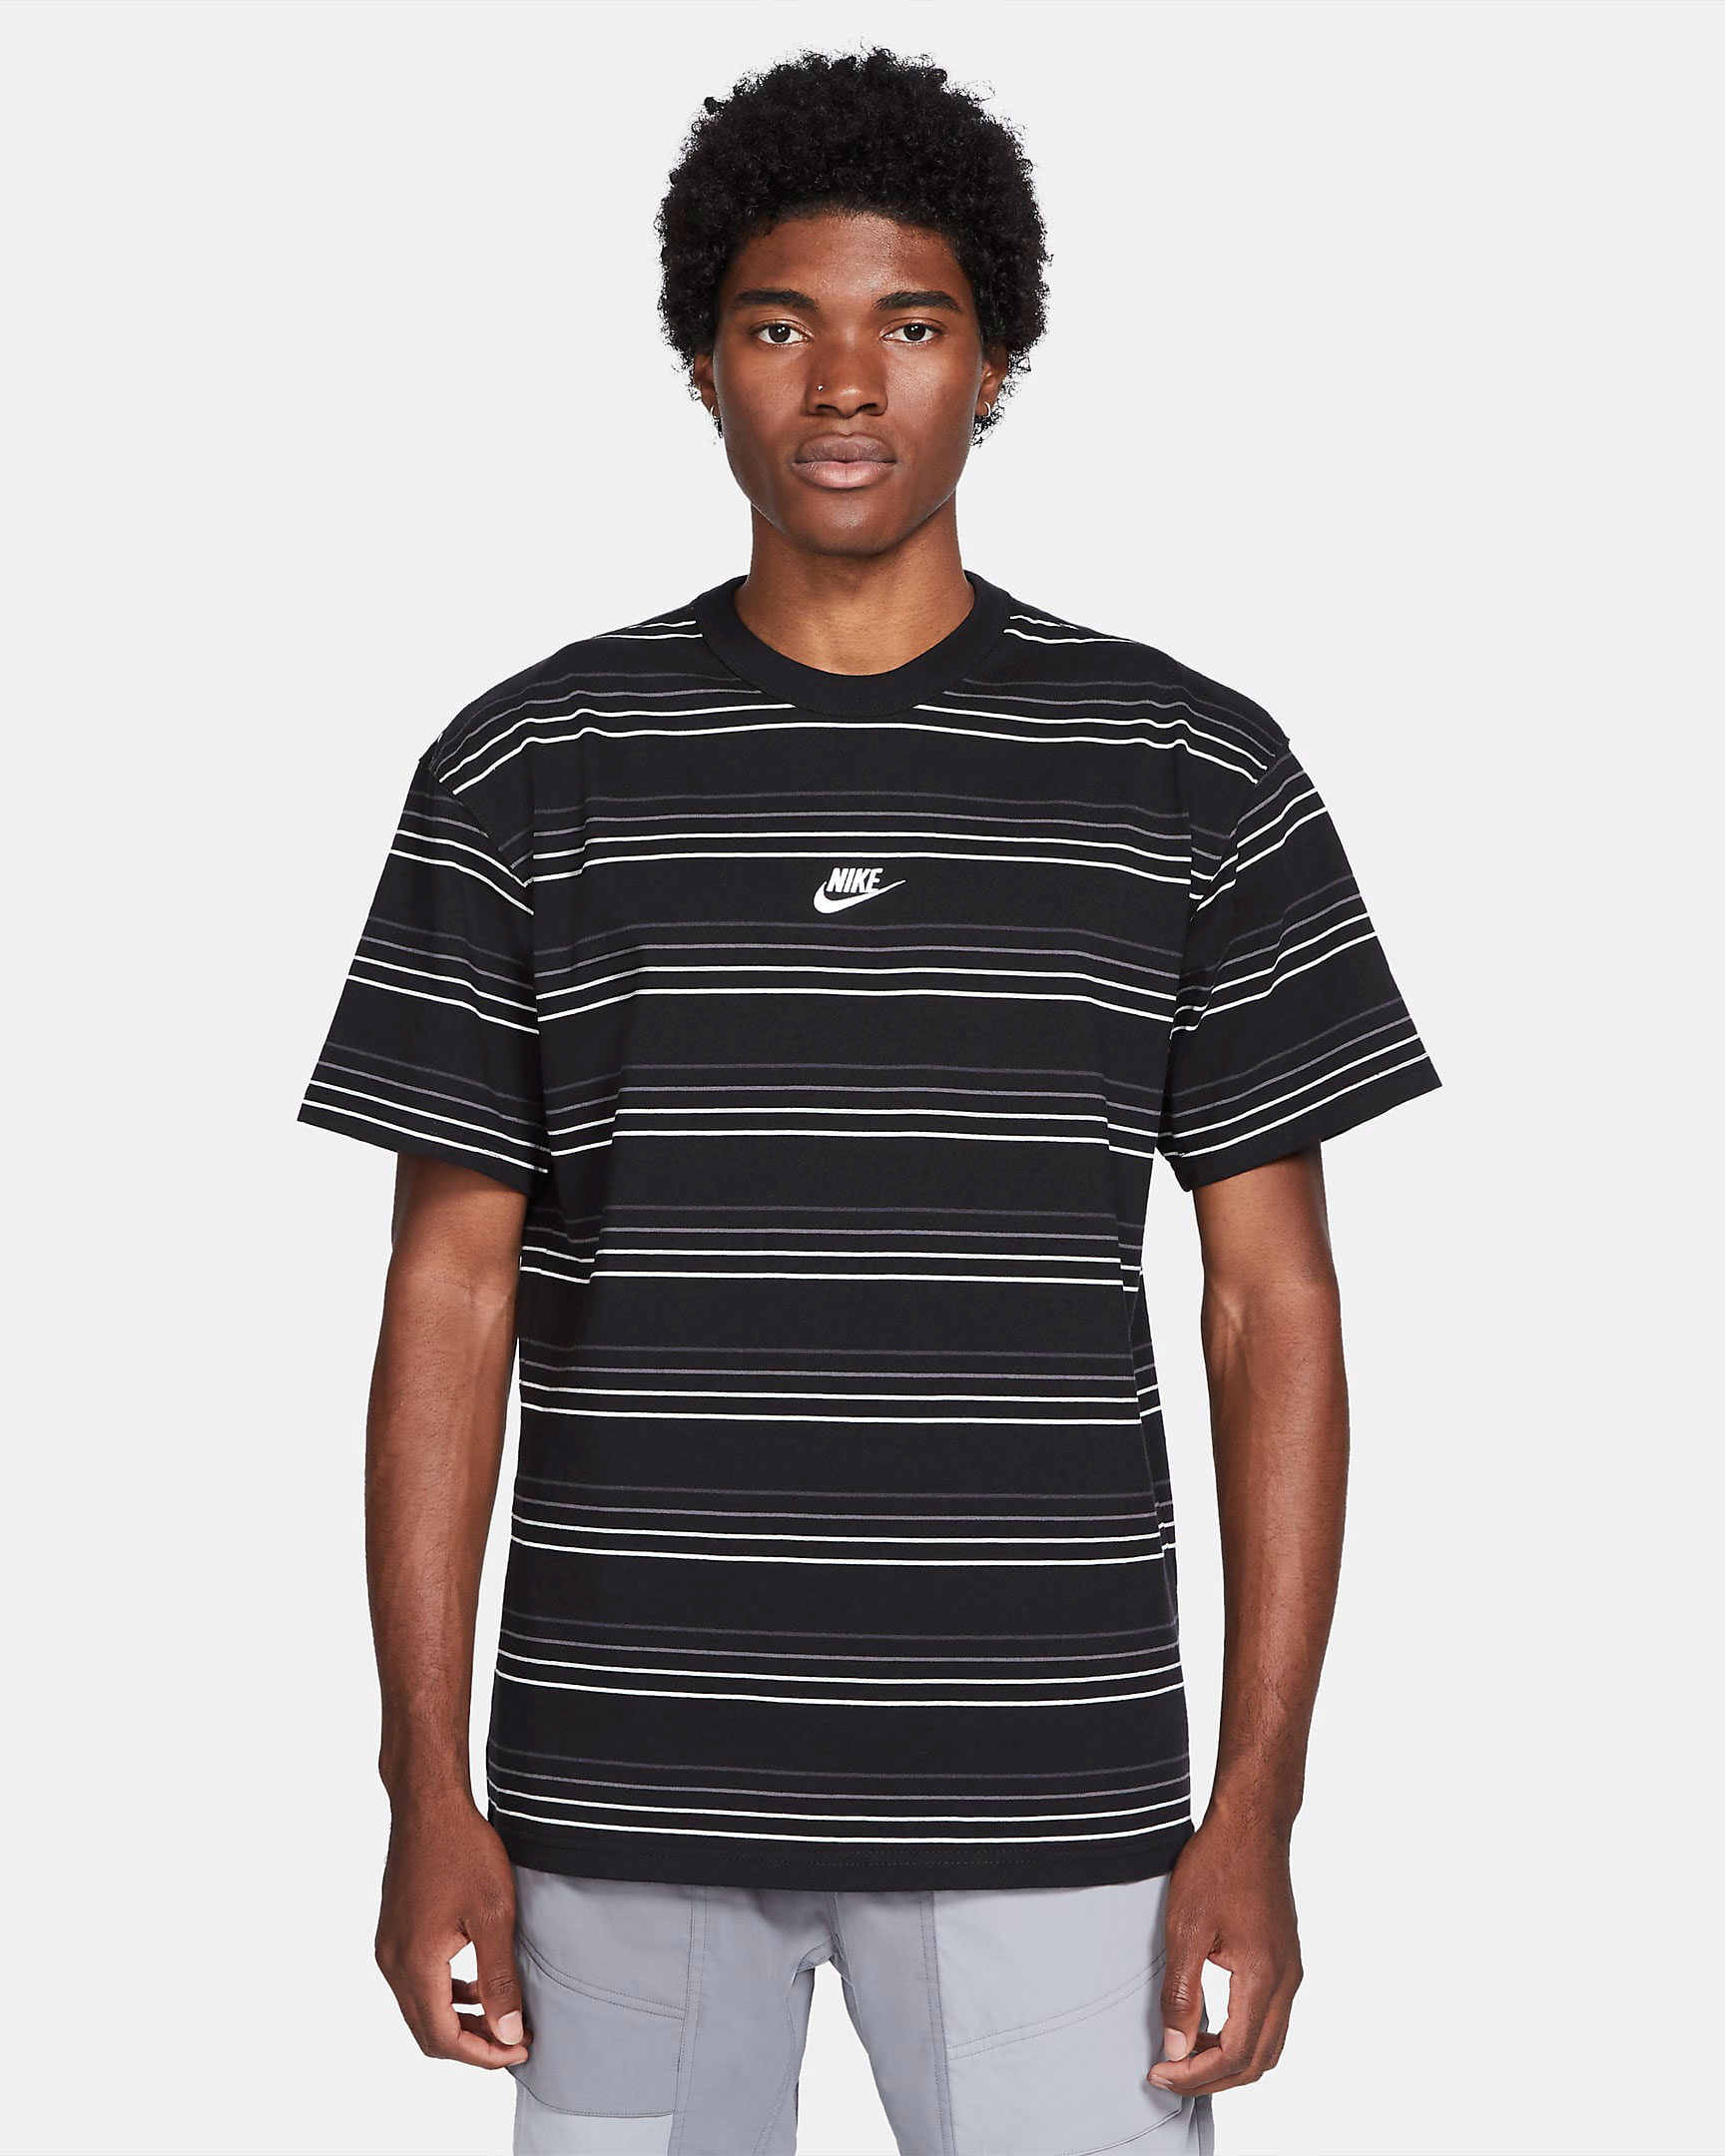 nike-dunk-low-black-white-tee-shirt-1